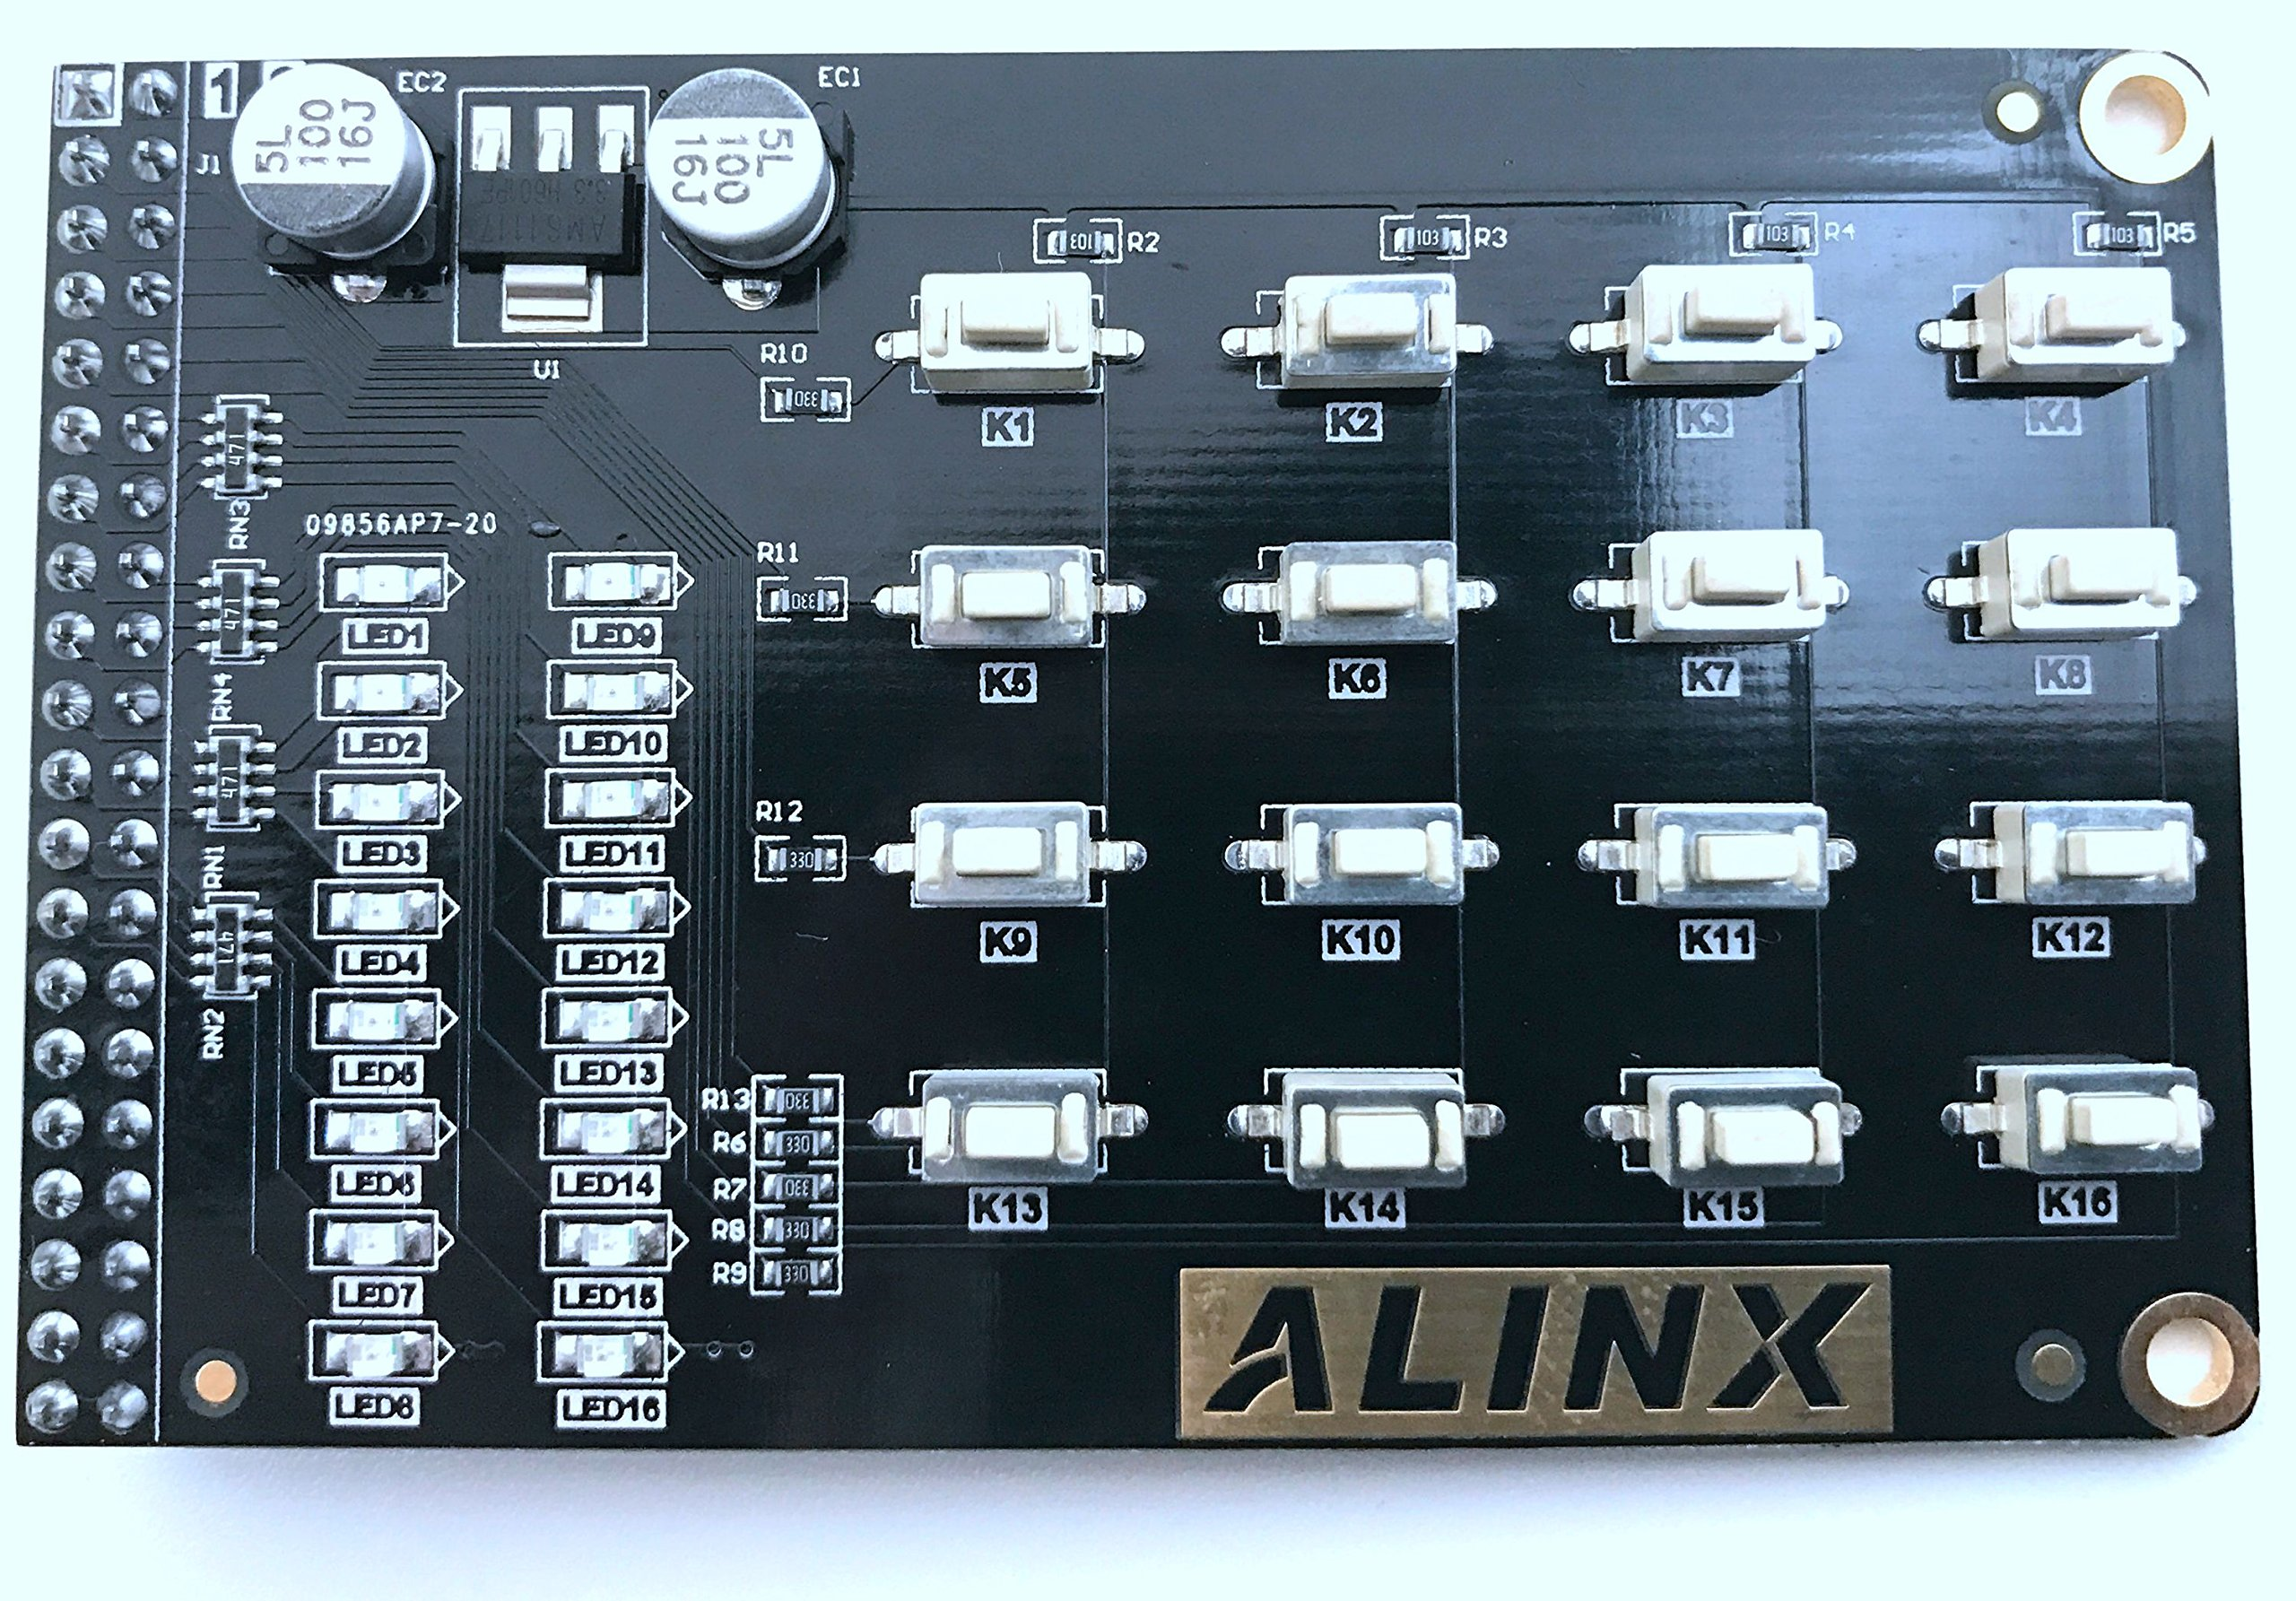 Alinx 44 Matrix Button LED Expansion Module 40-pins Directly-pluggable into ALINX Serial FPGA Development Board AN0404